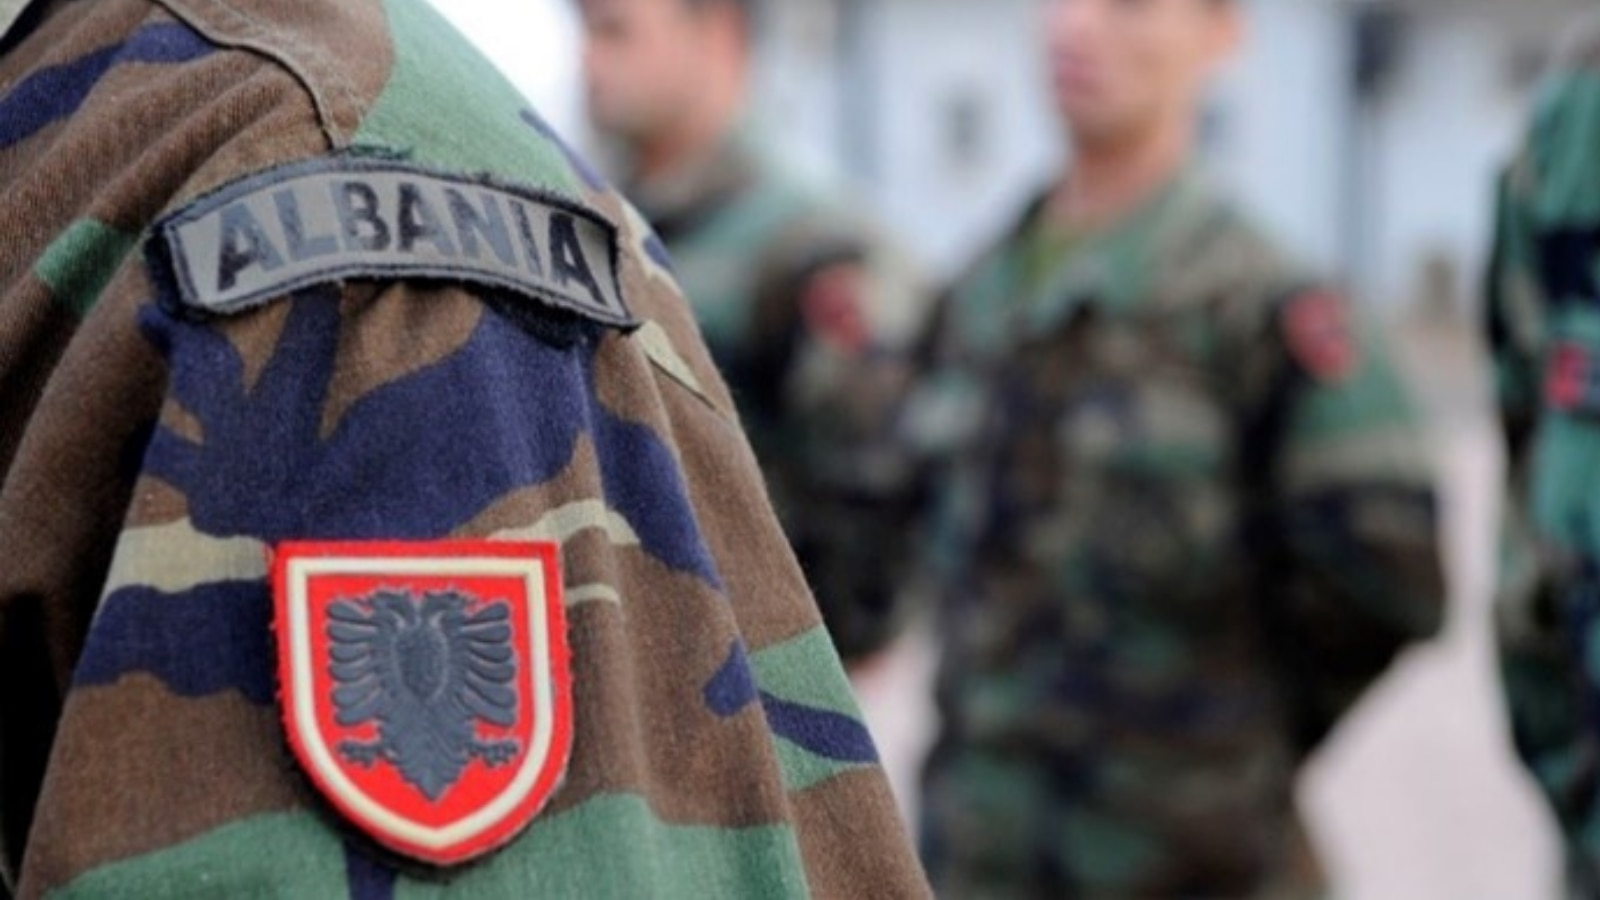 Albanian Armed Forces personnel stand at attention. (Photo courtesy of Creative Commons)